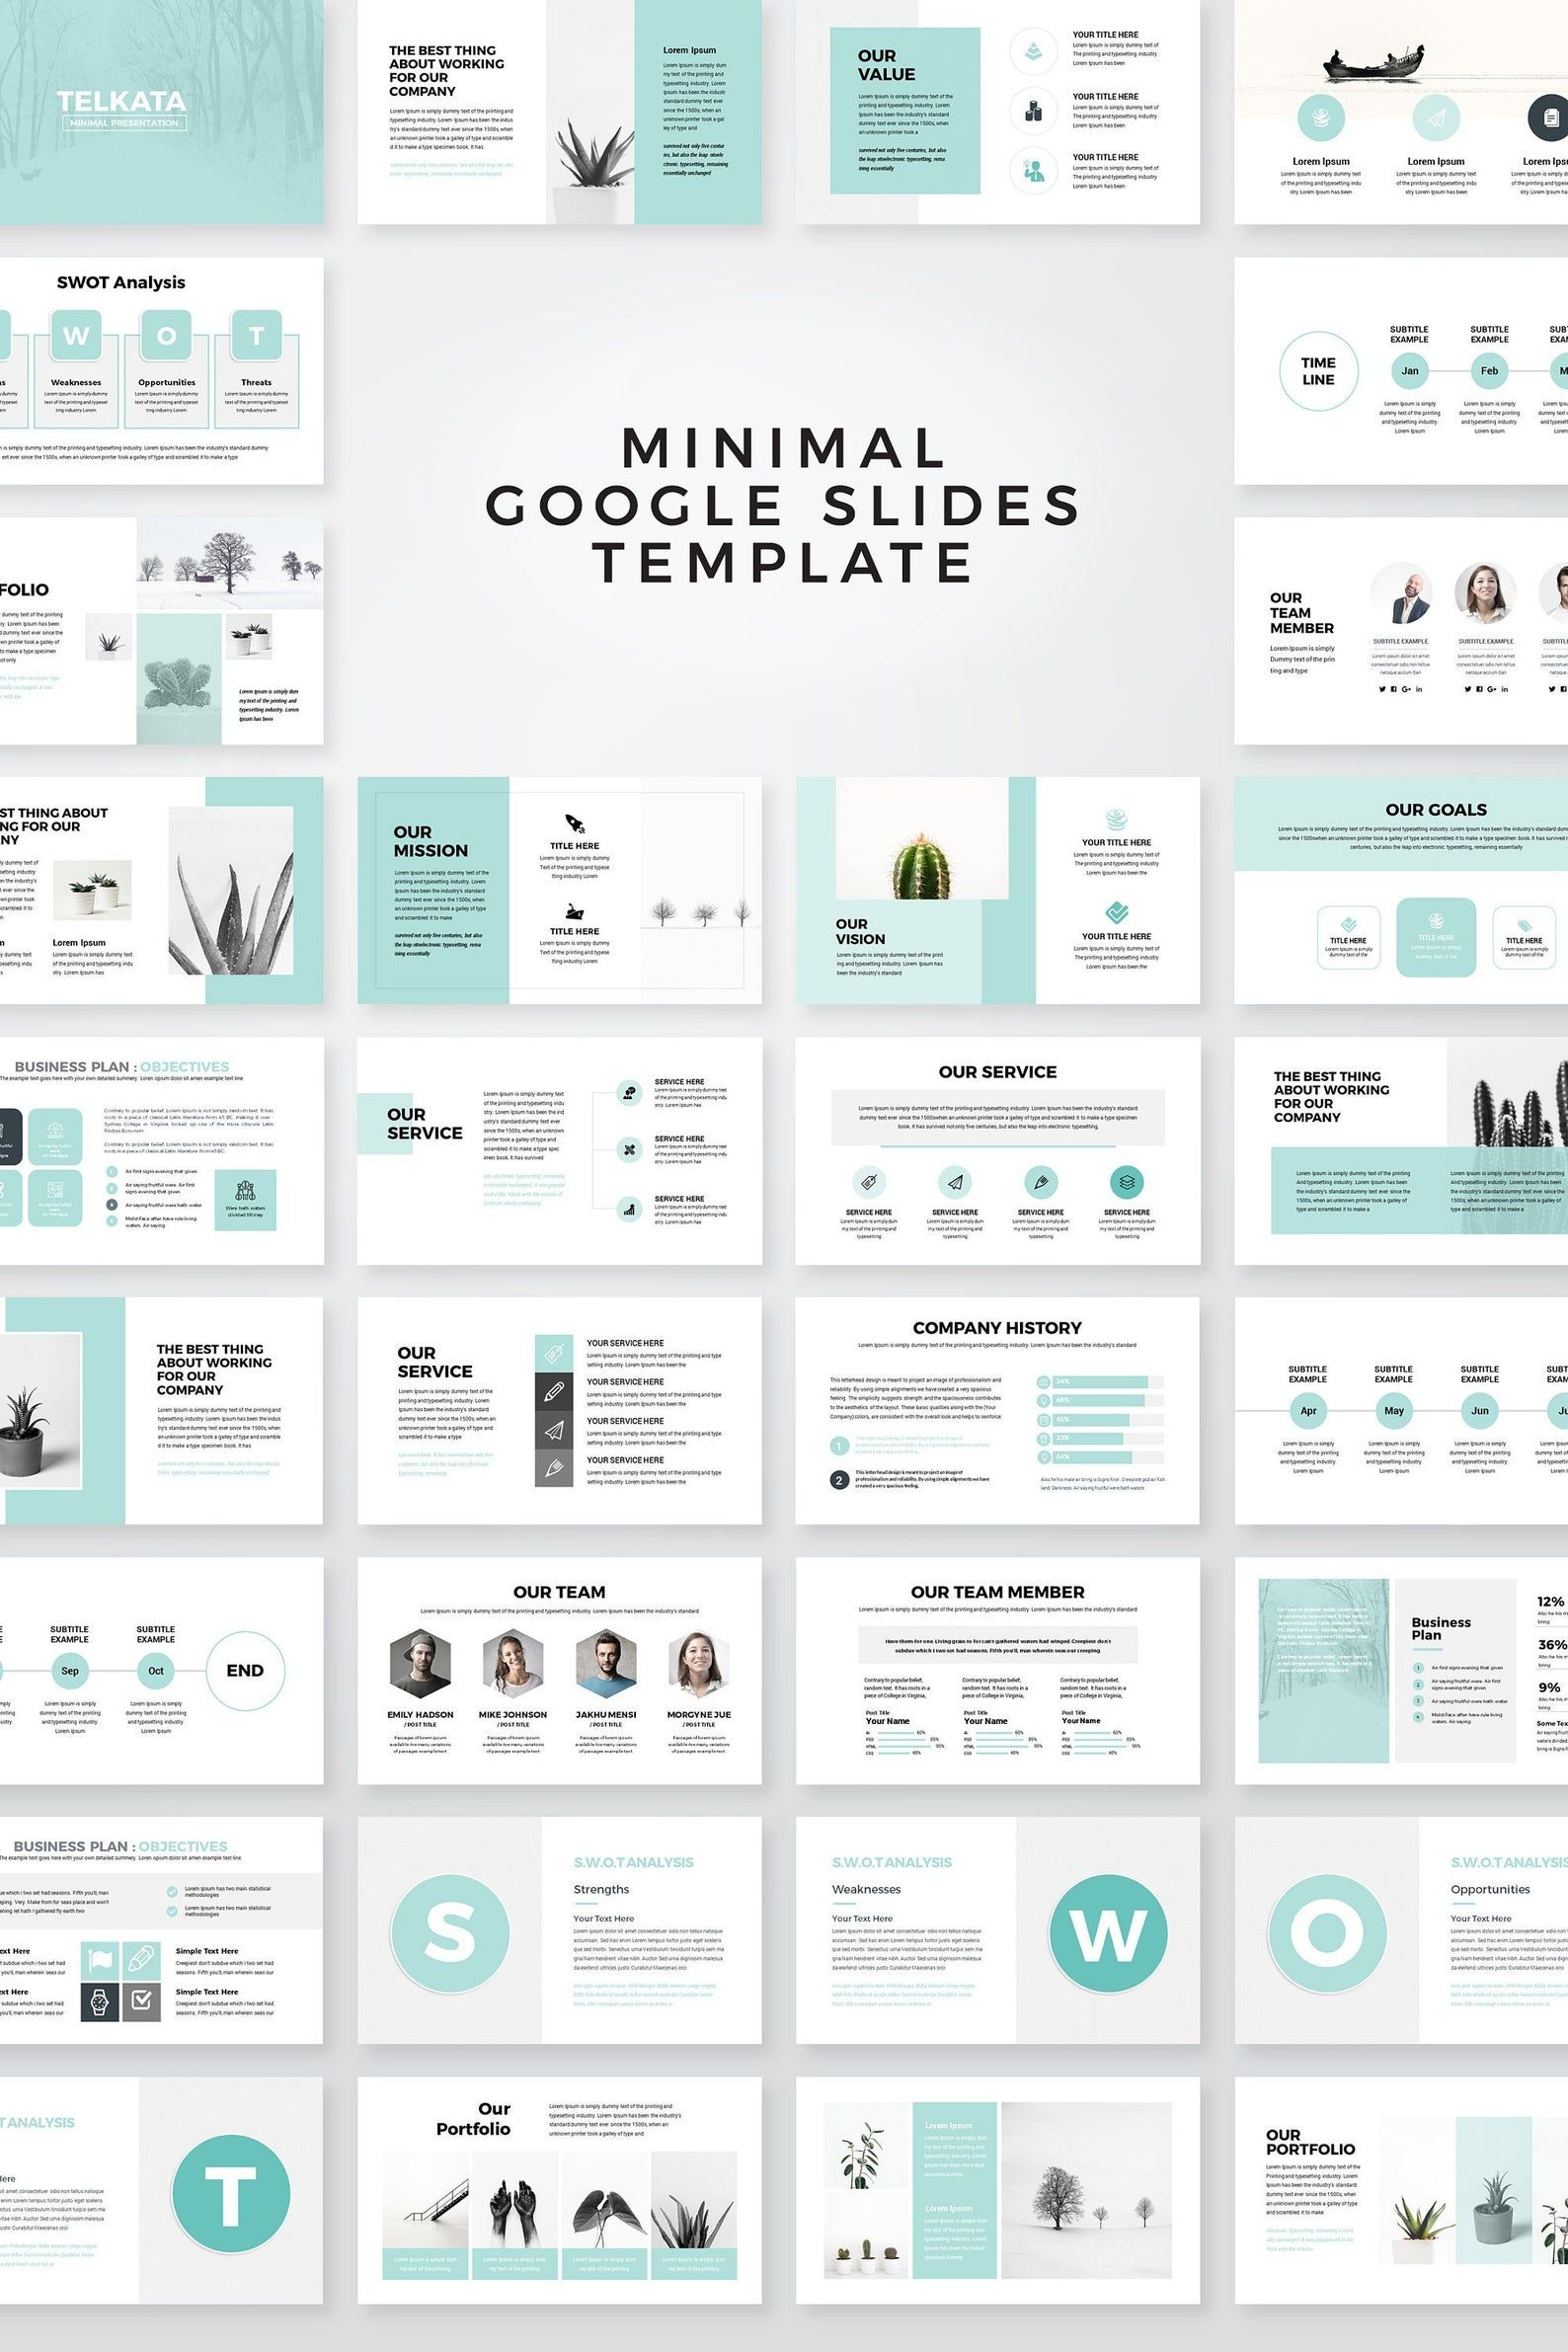 Modern Business Plan Google Slides Template, Edita